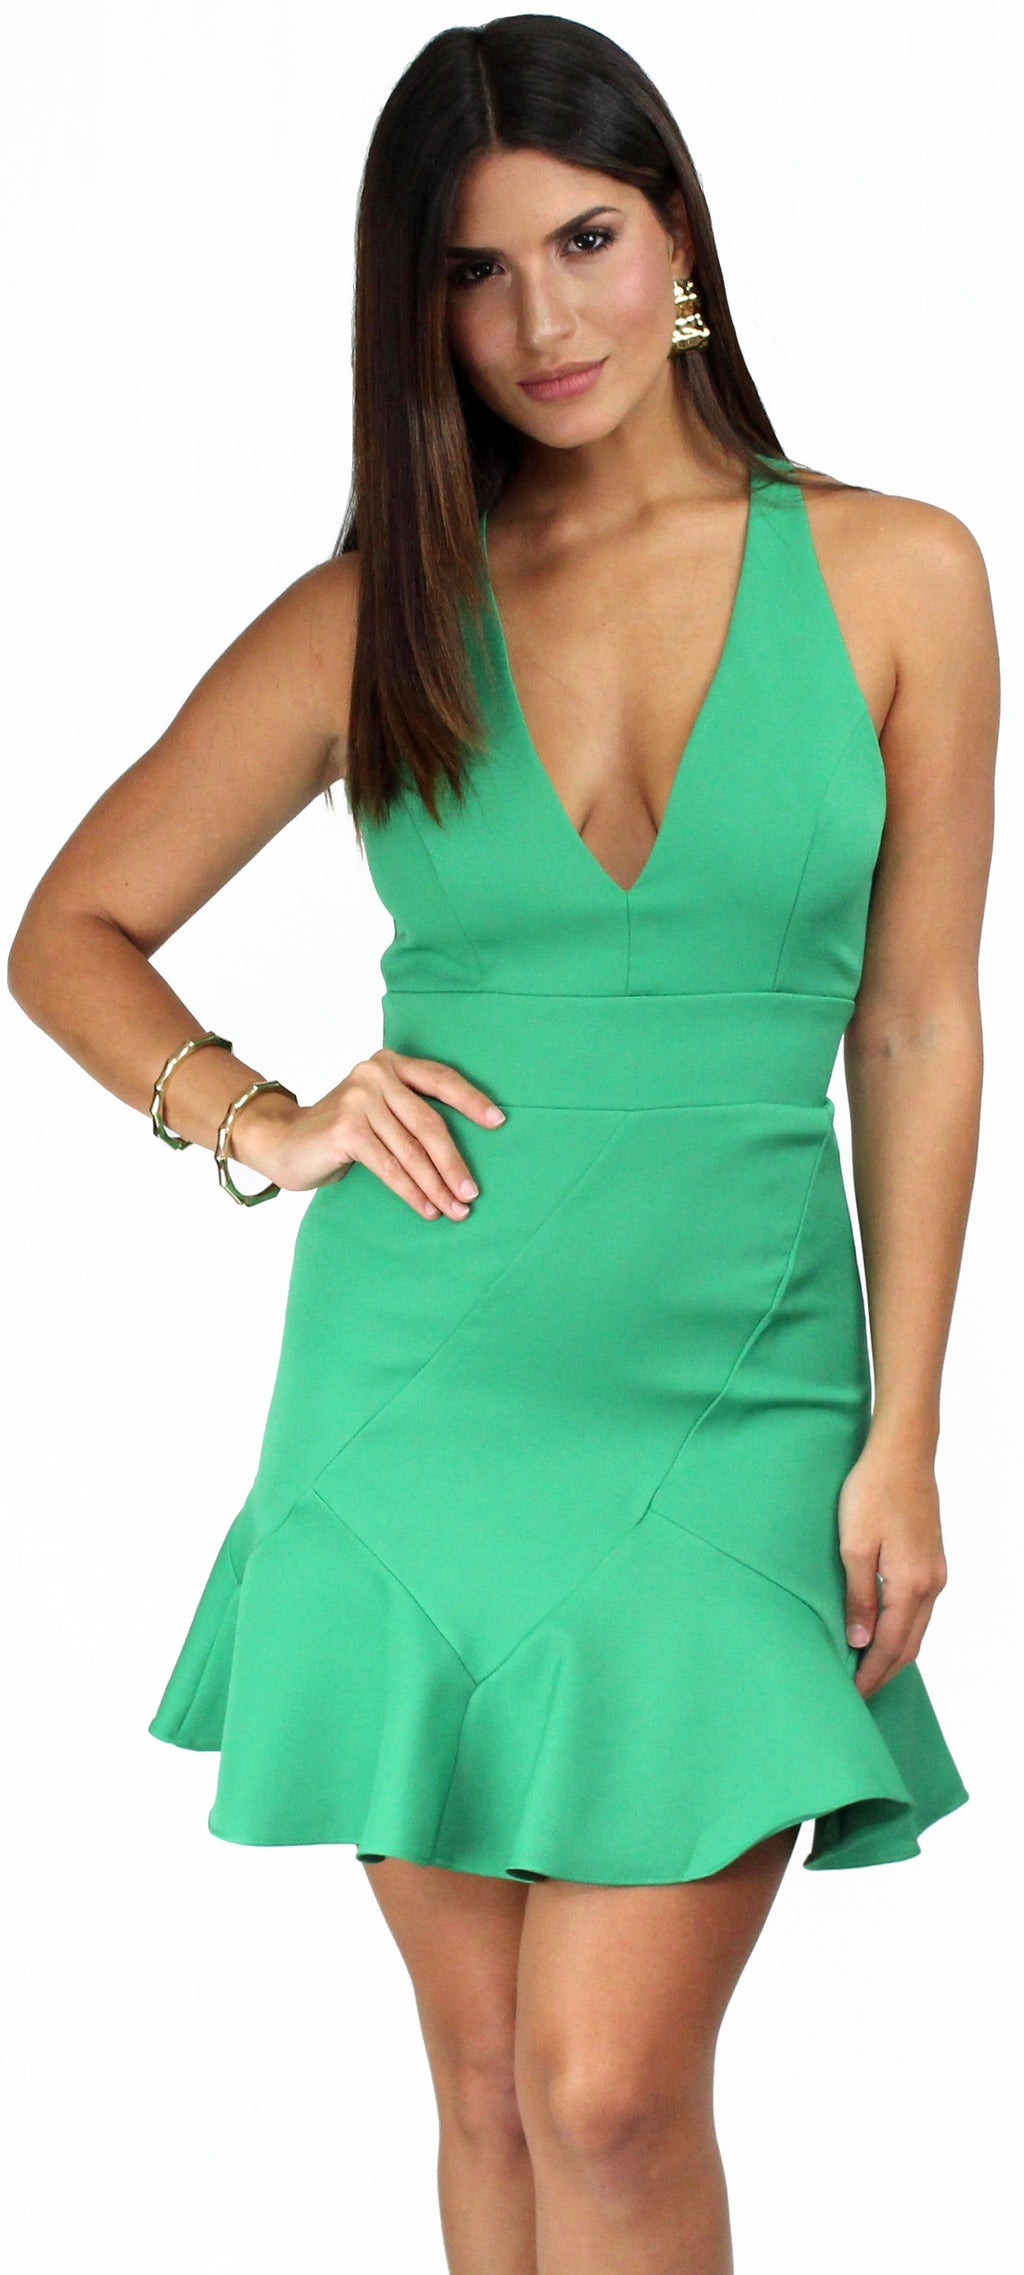 Lover of Mine Green Ruffle Mini Dress